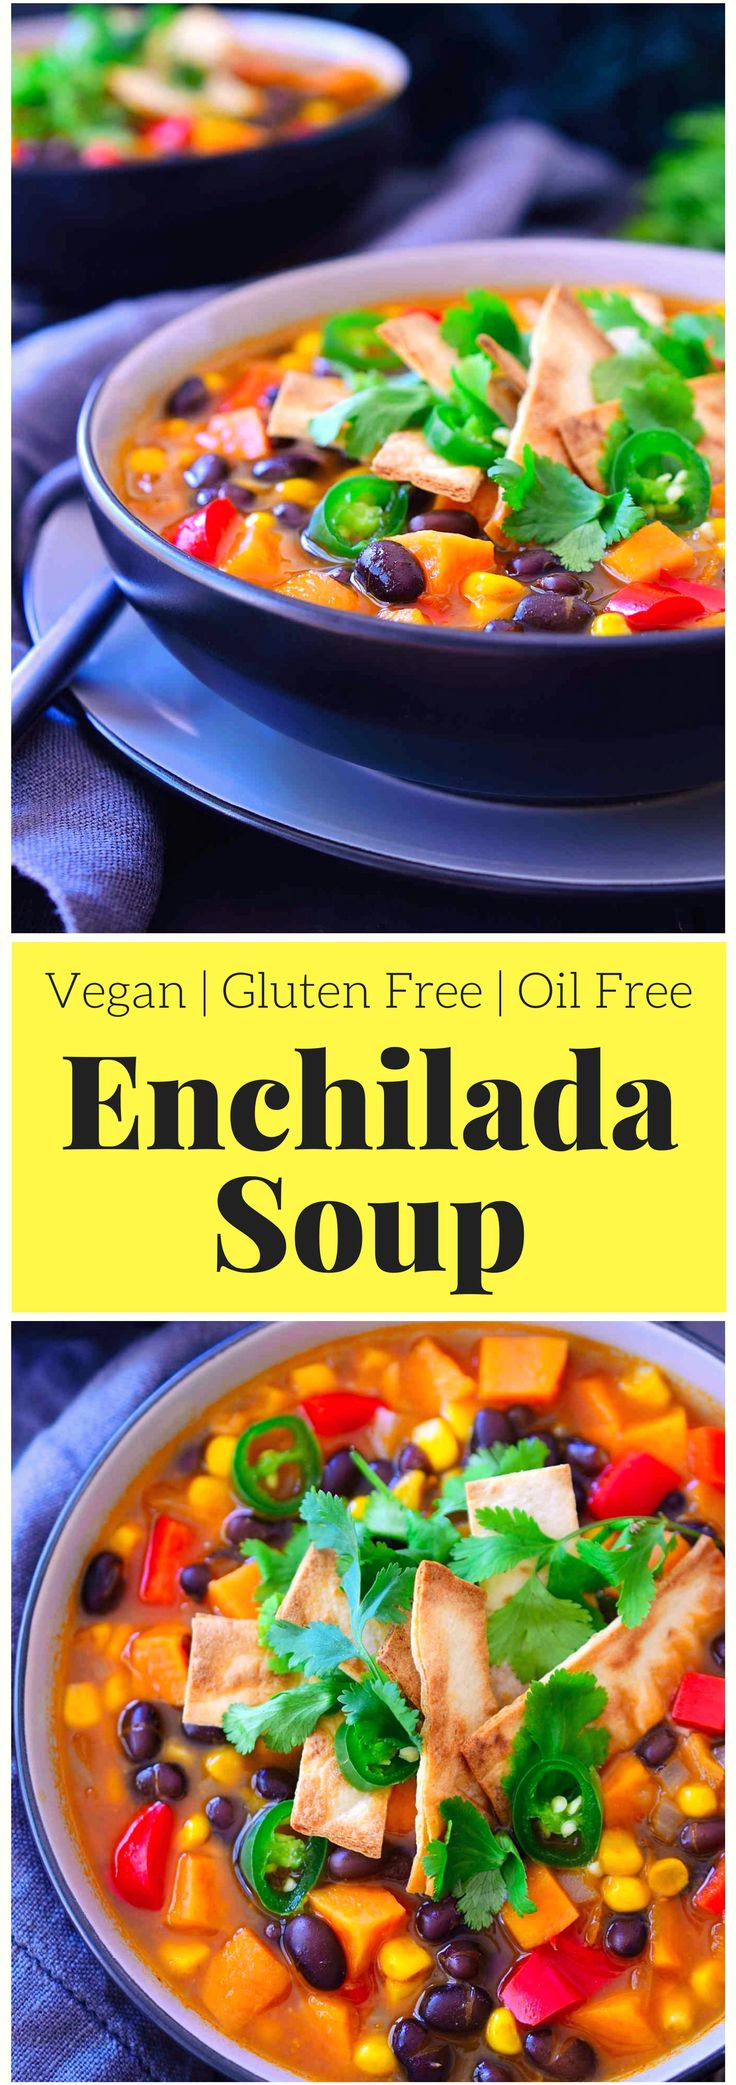 This vegetarian enchilada soup tastes just like … you guessed it: enchiladas, but in soup form. Not only is it super tasty and vegan, it's much quicker and easier than traditional enchiladas as it can be ready in just 20 minutes! It's a super lazy, freezer friendly and filling meal that costs less than two dollars a serving.